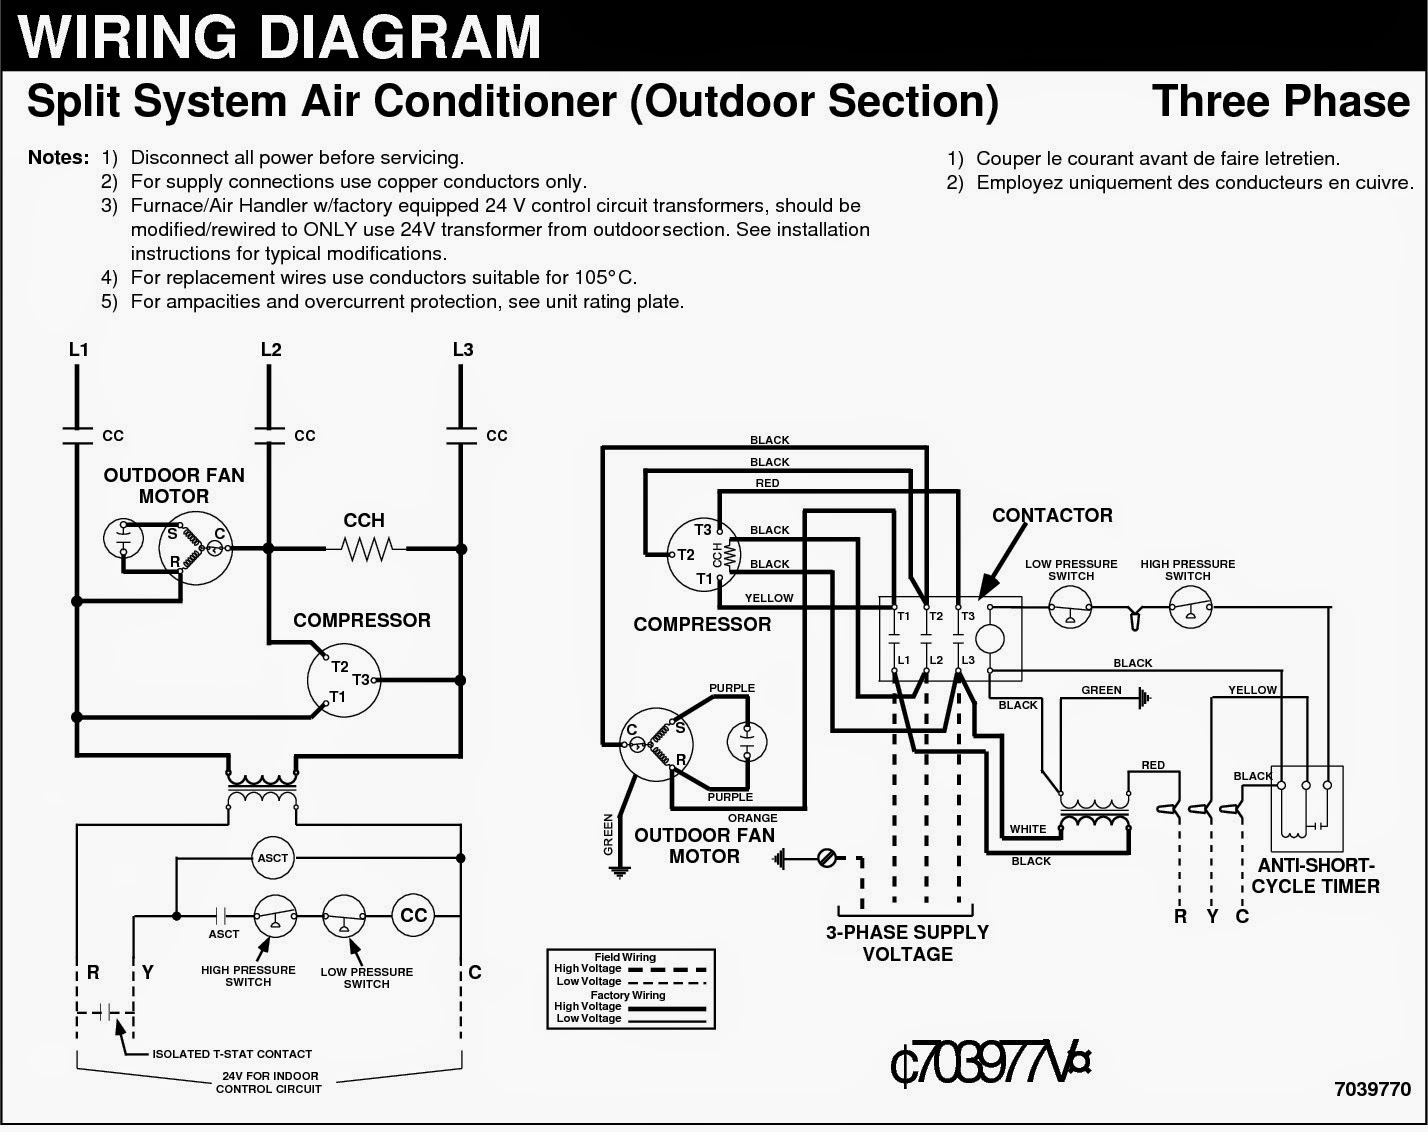 saab 9 3 aircon wiring diagram all wiring diagram ac wiring schematics electrical wiring diagrams for air conditioning saab 9 5 wiring harness diagram saab 9 3 aircon wiring diagram